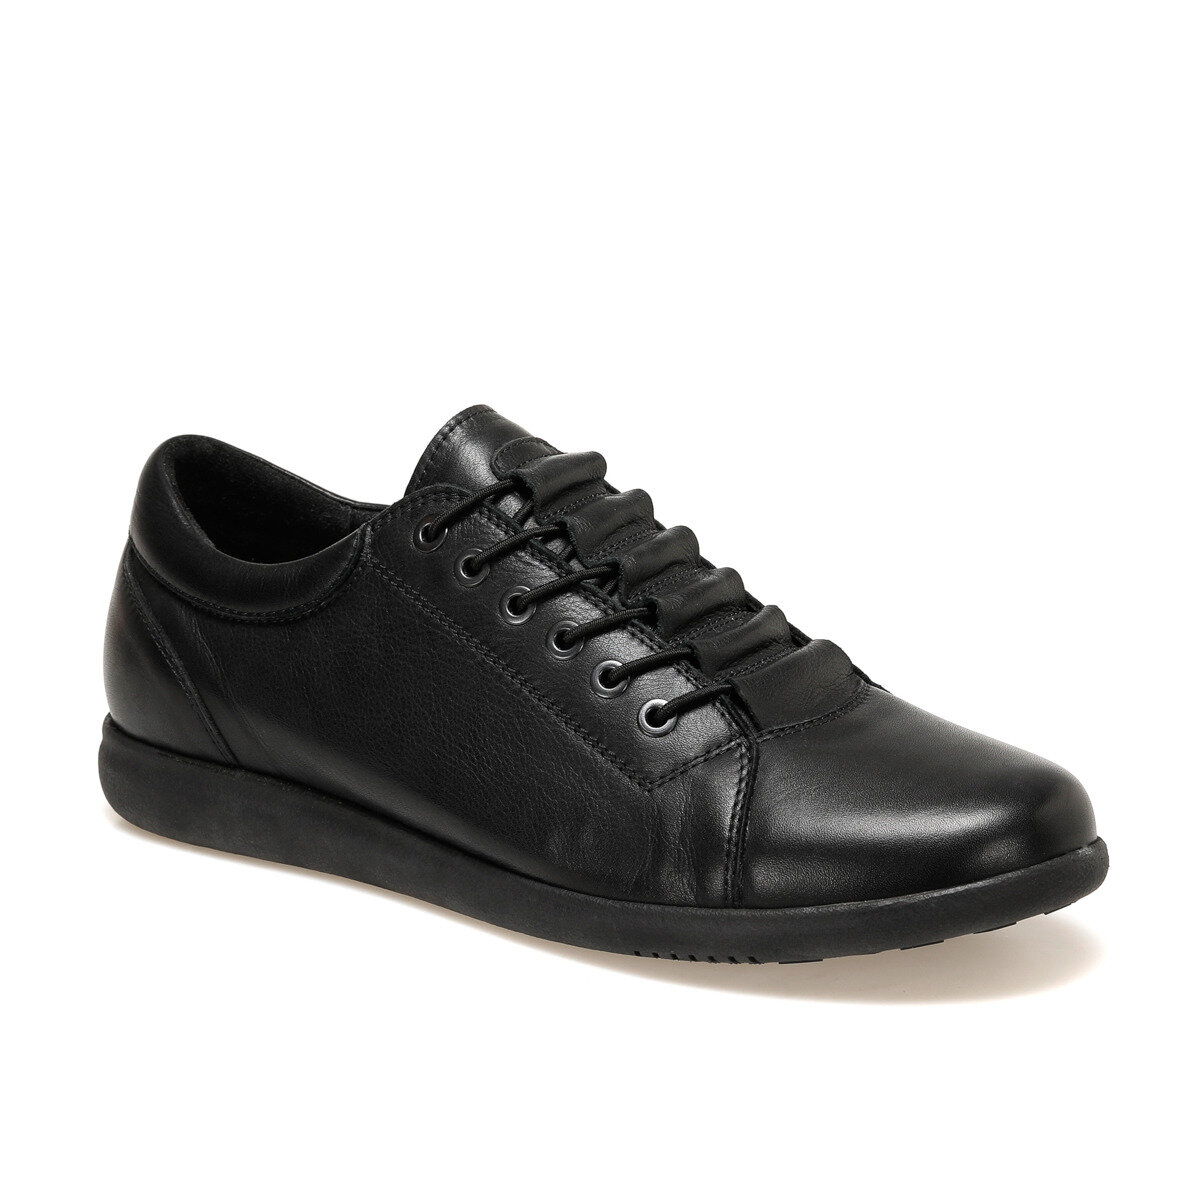 FLO 013-Y Black Men Casual Shoes Oxide